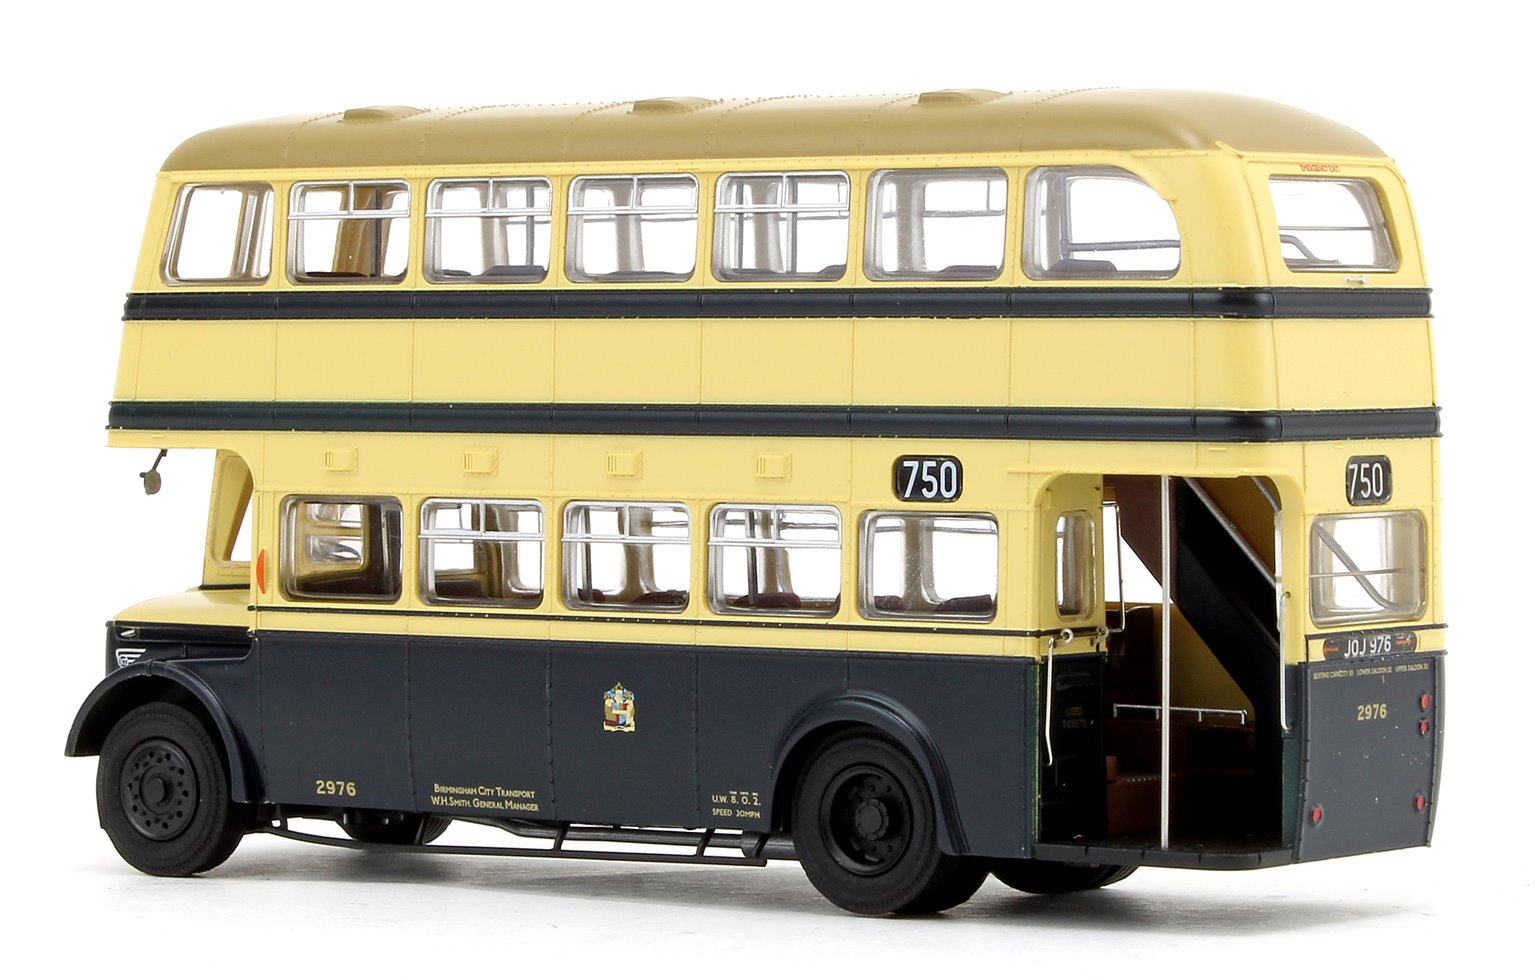 Birmingham City Transport (BCT) Blue/Cream with Khaki Roof Guy Arab IV with Metro-Cammell body - Fleet No.2976 - 750 Wythall Transport Museum - Licence No. JOJ 976 (Gold Numbers)